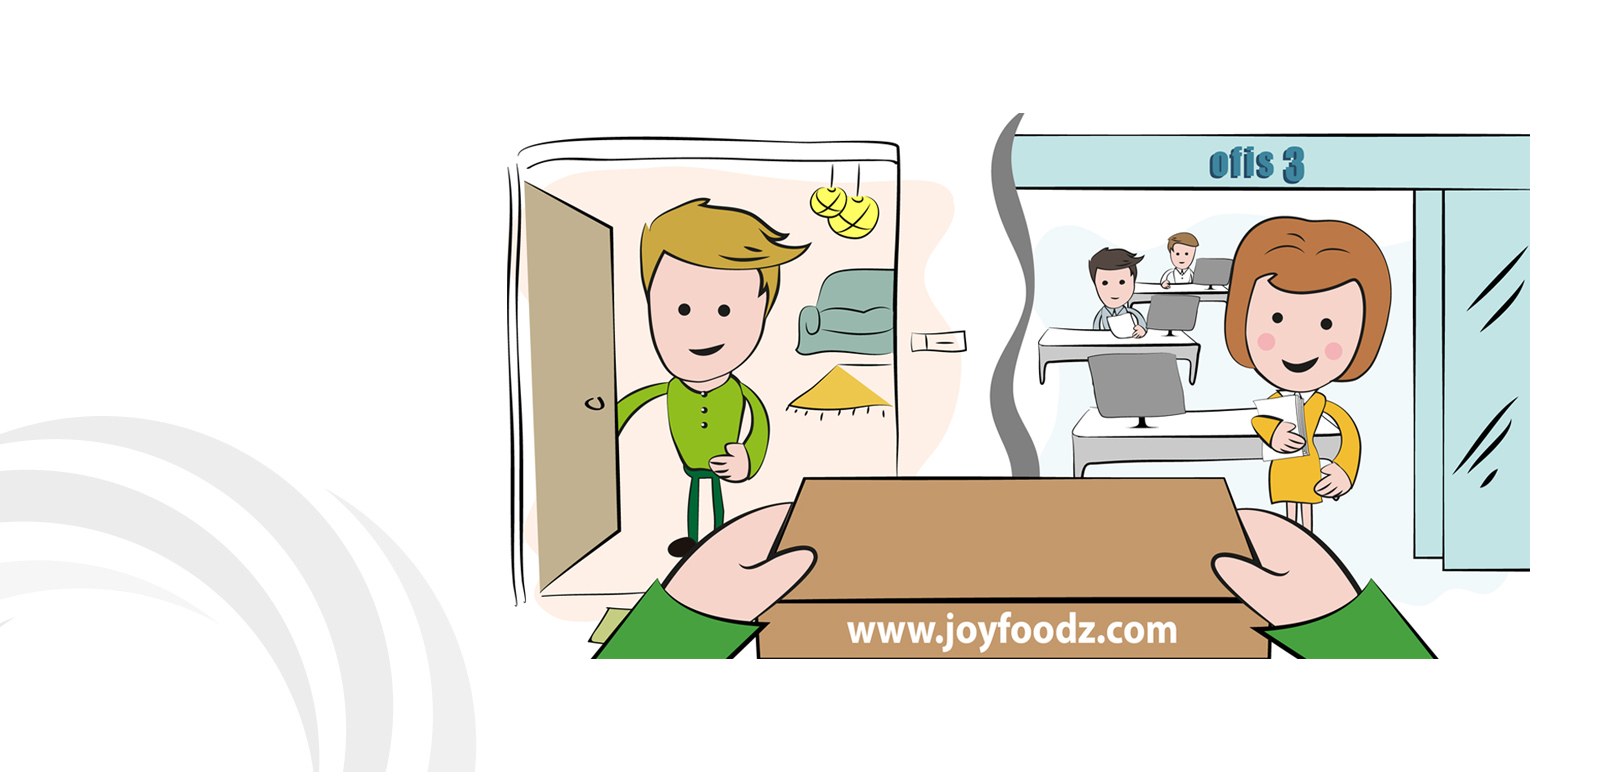 Joyfoodz Animation, Illustration 12